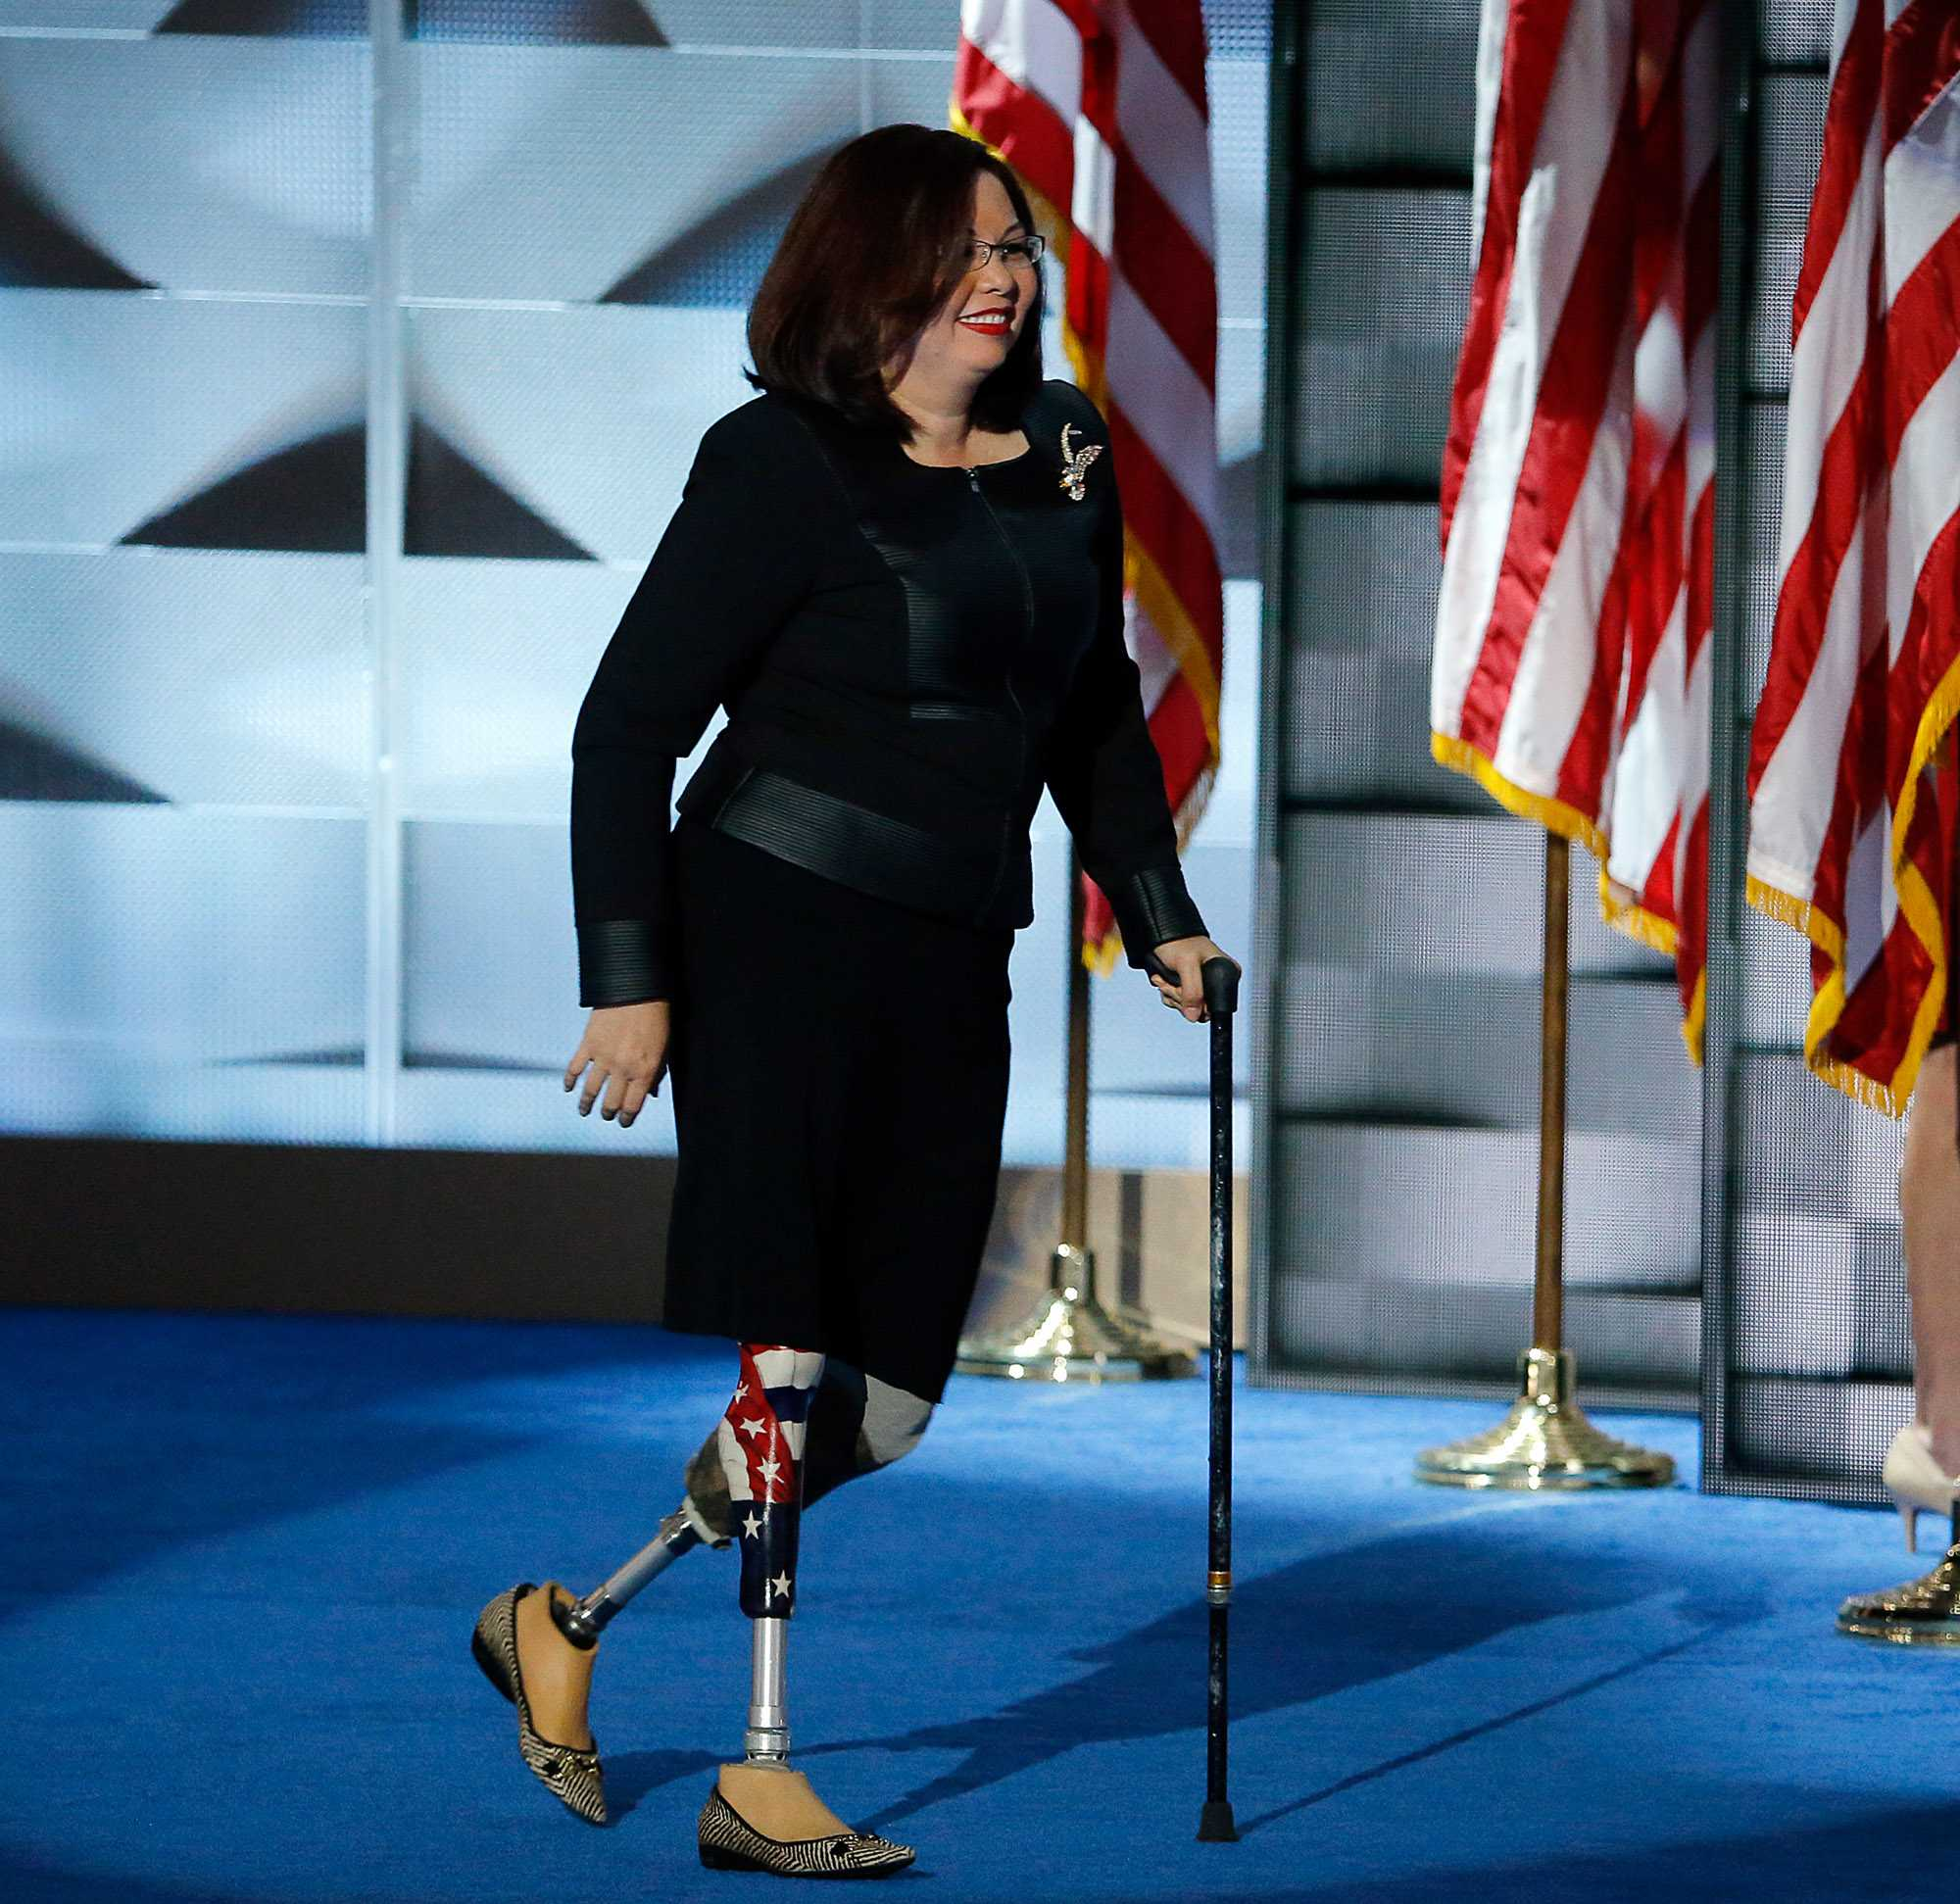 Illinois Rep. Tammy Duckworth walks to the stage to address delegates during the last day of the Democratic National Convention at the Wells Fargo Center in Philadelphia on Thursday, July 28, 2016. (Michael Bryant/Philadelphia Inquirer/TNS)